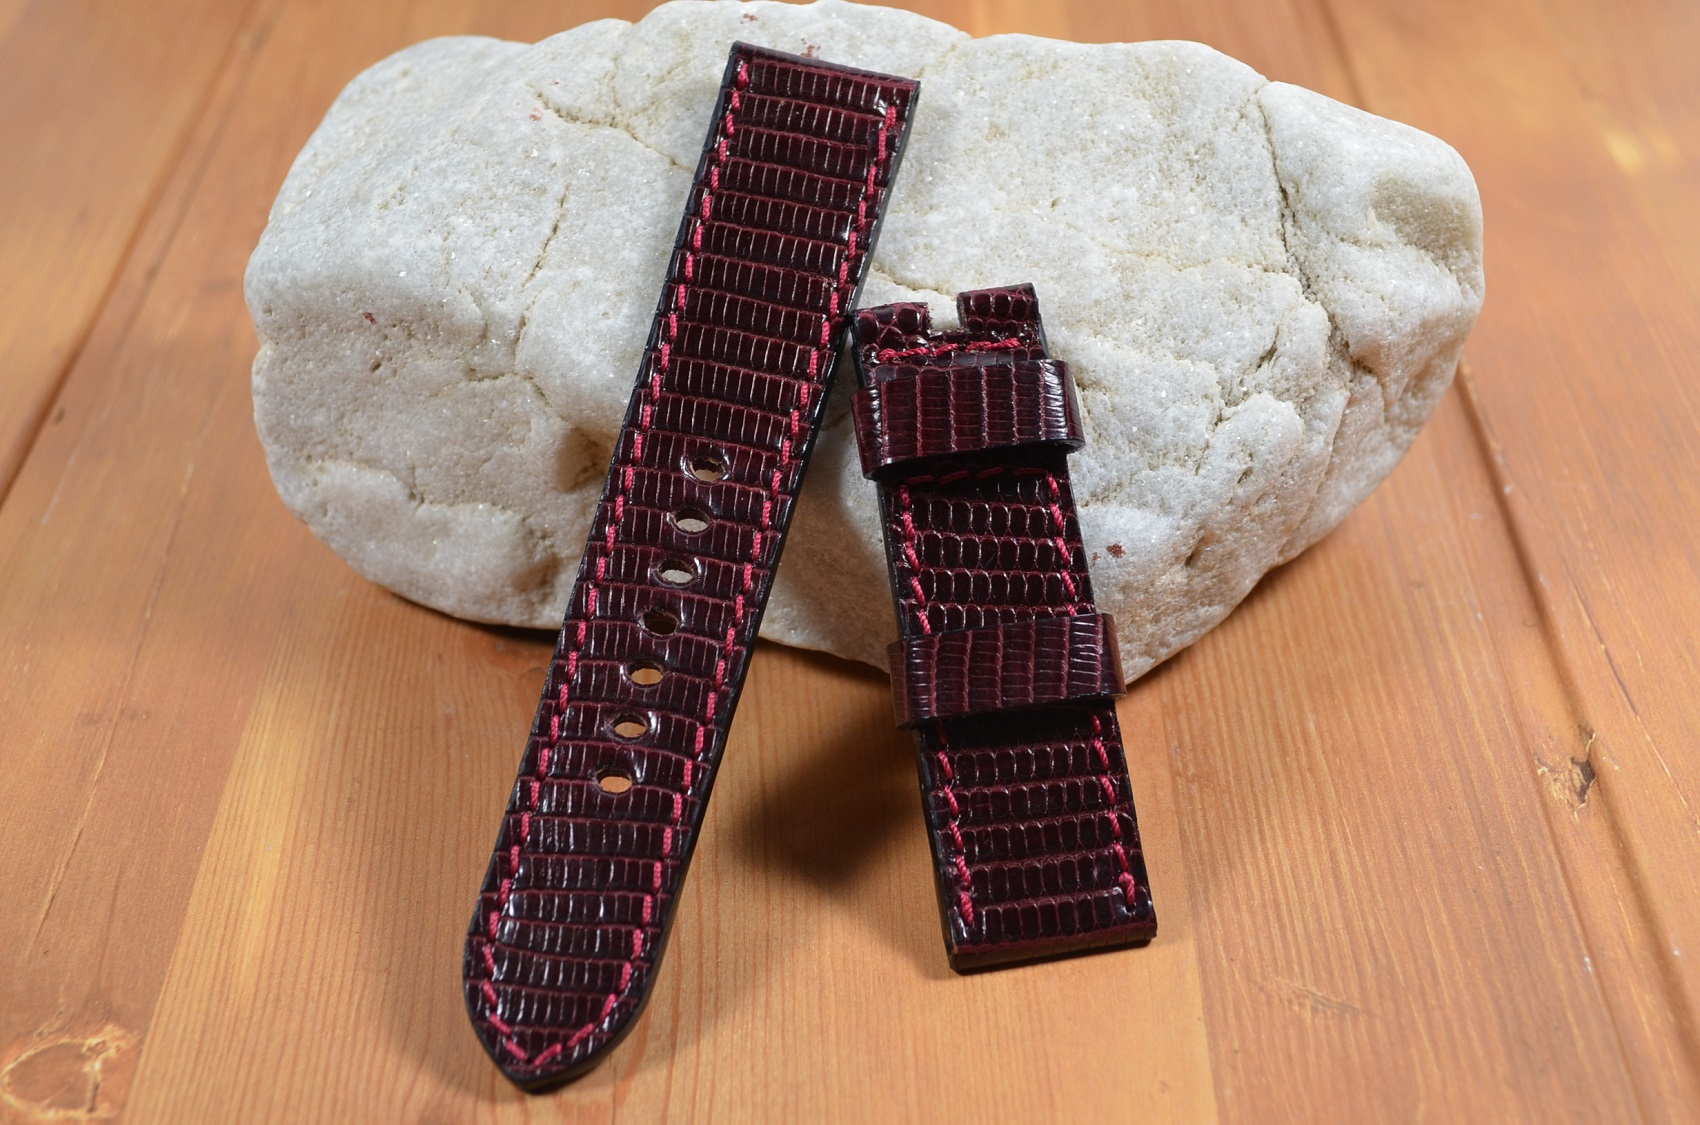 BURGUNDY SHINY is one of our hand crafted watch straps. Available in burgundy color, 3.5 - 4 mm thick.